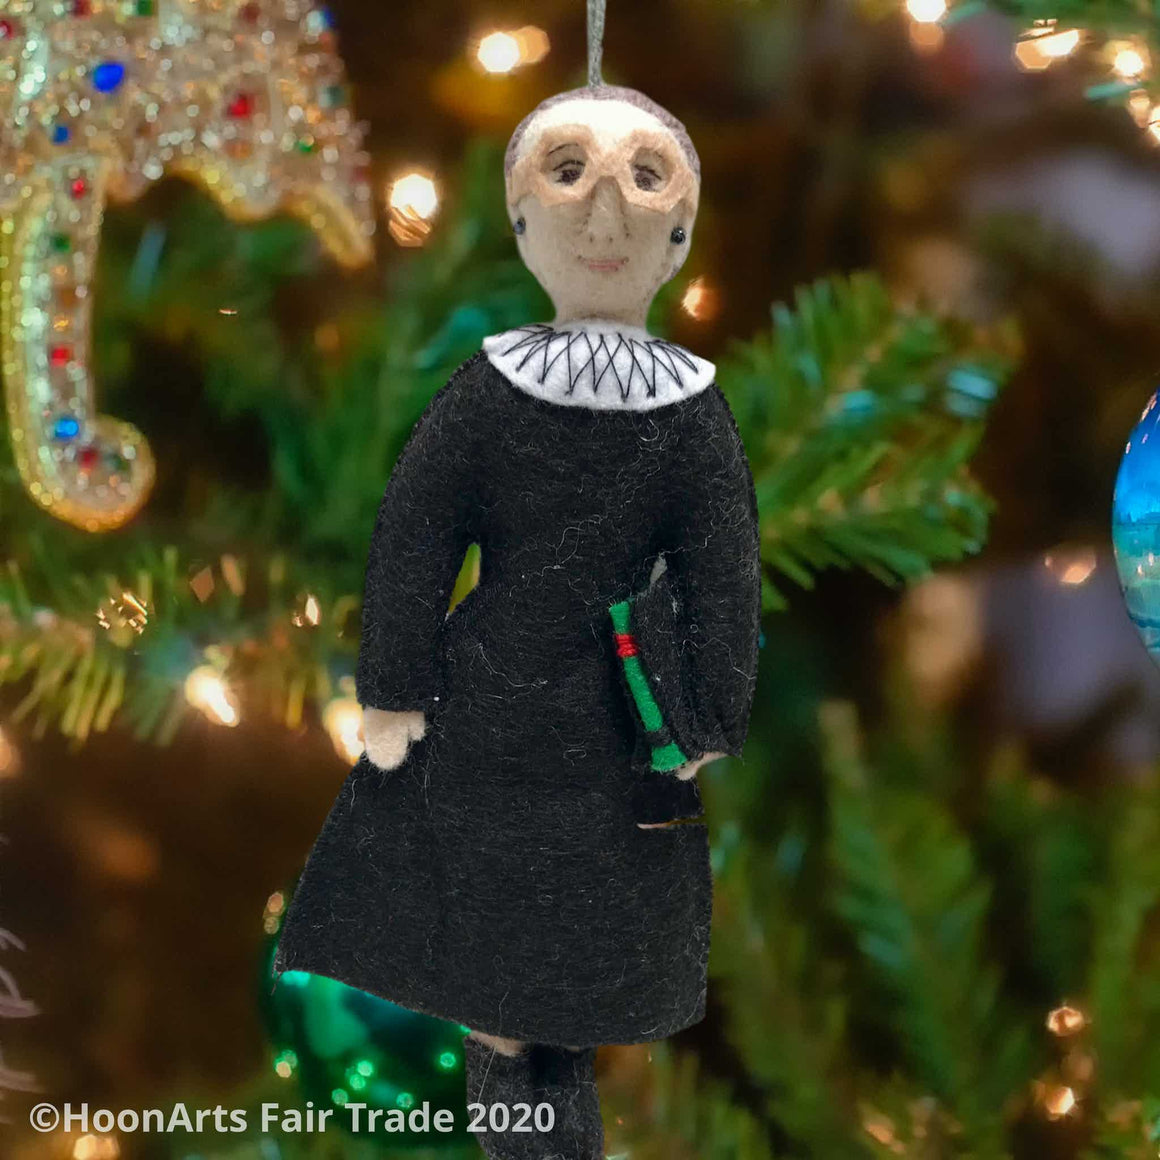 RBG Handmade Felted Ornament, Dressed in Black Judicial Robes with White Collar and Law Book in Her Hands, Handing on a Christmas Tree